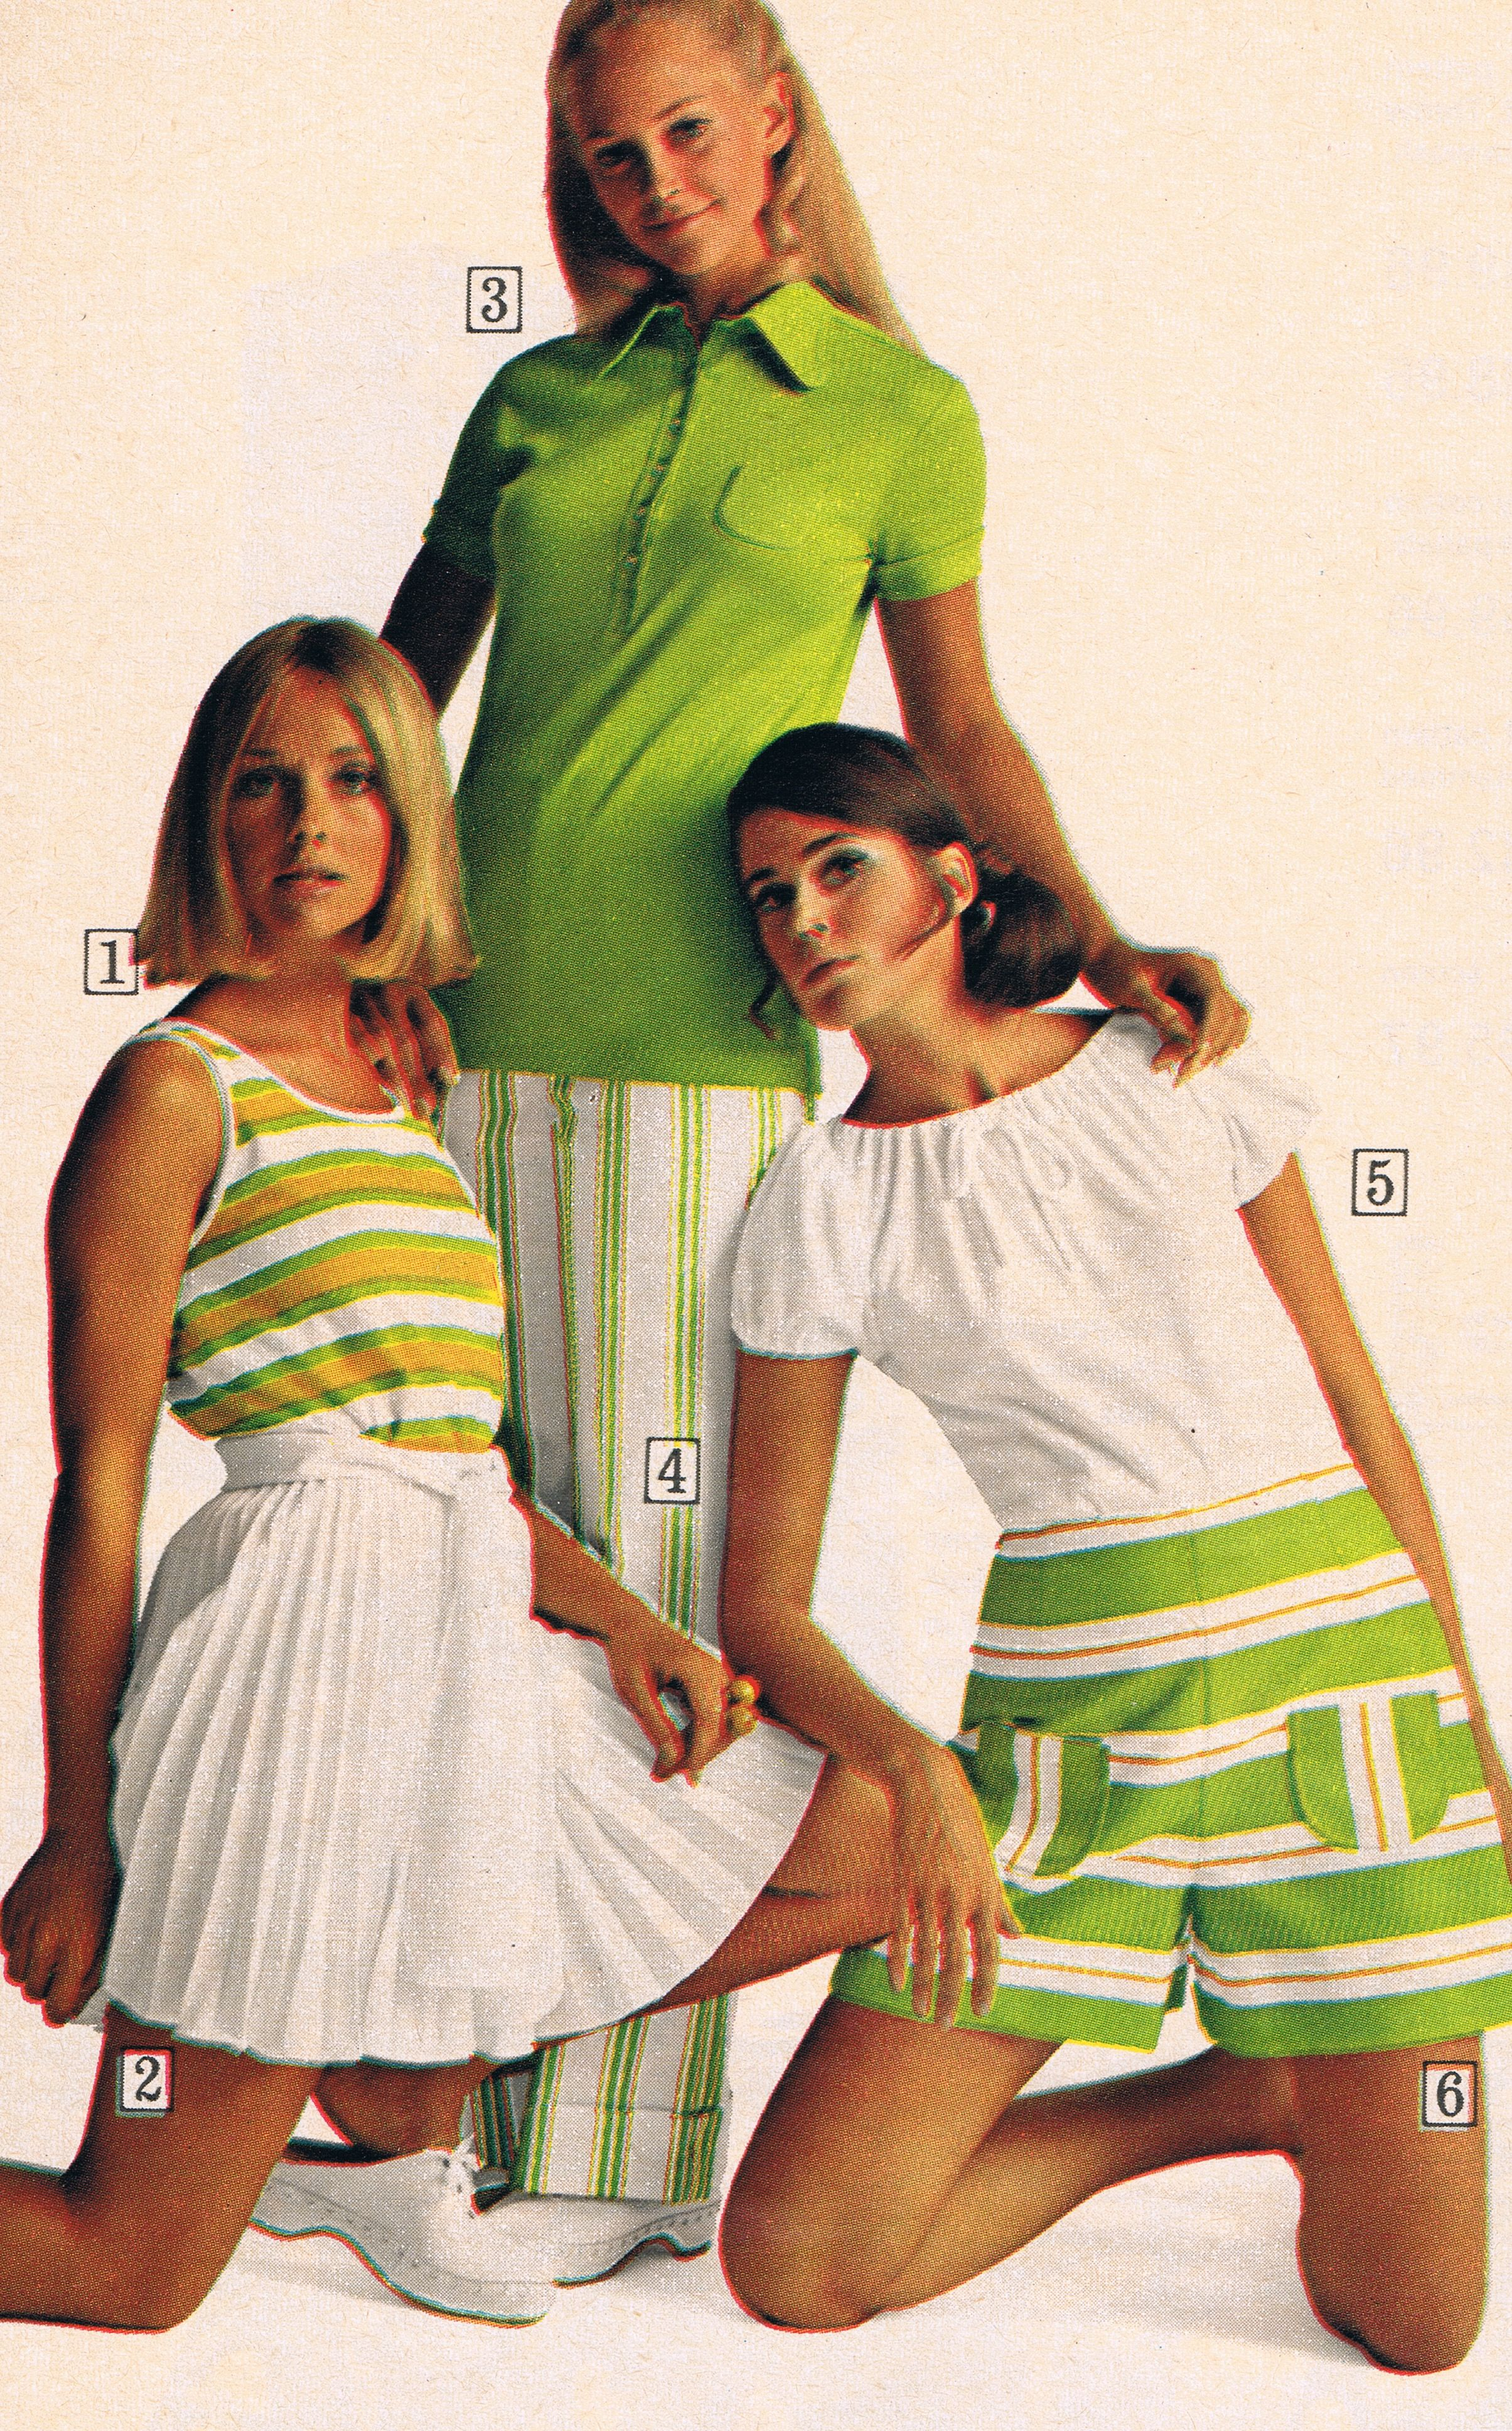 c14f599a Sears catalog 1970 - Cay Sanderson, unknown model and Colleen Corby ...